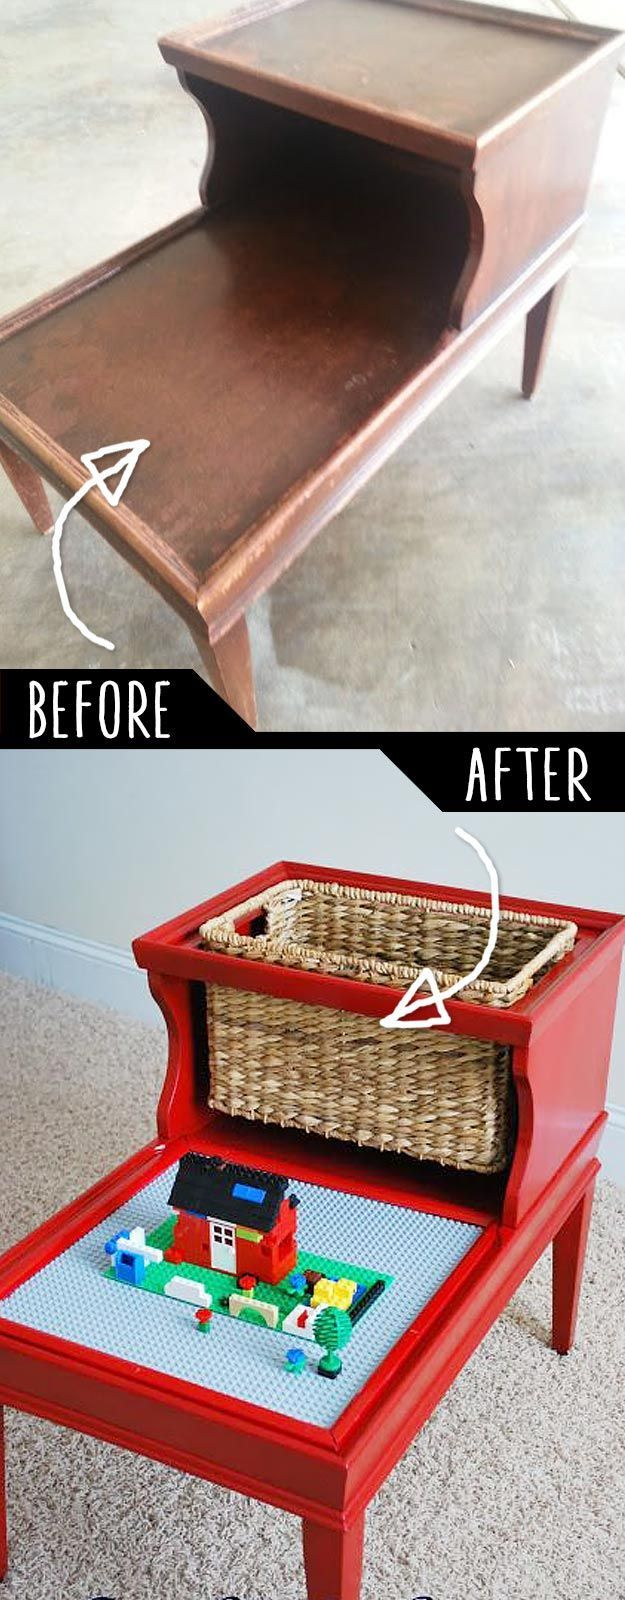 25 best ideas about refinished furniture on pinterest rehabbed furniture restoring furniture - Do it yourself furniture ideas ...